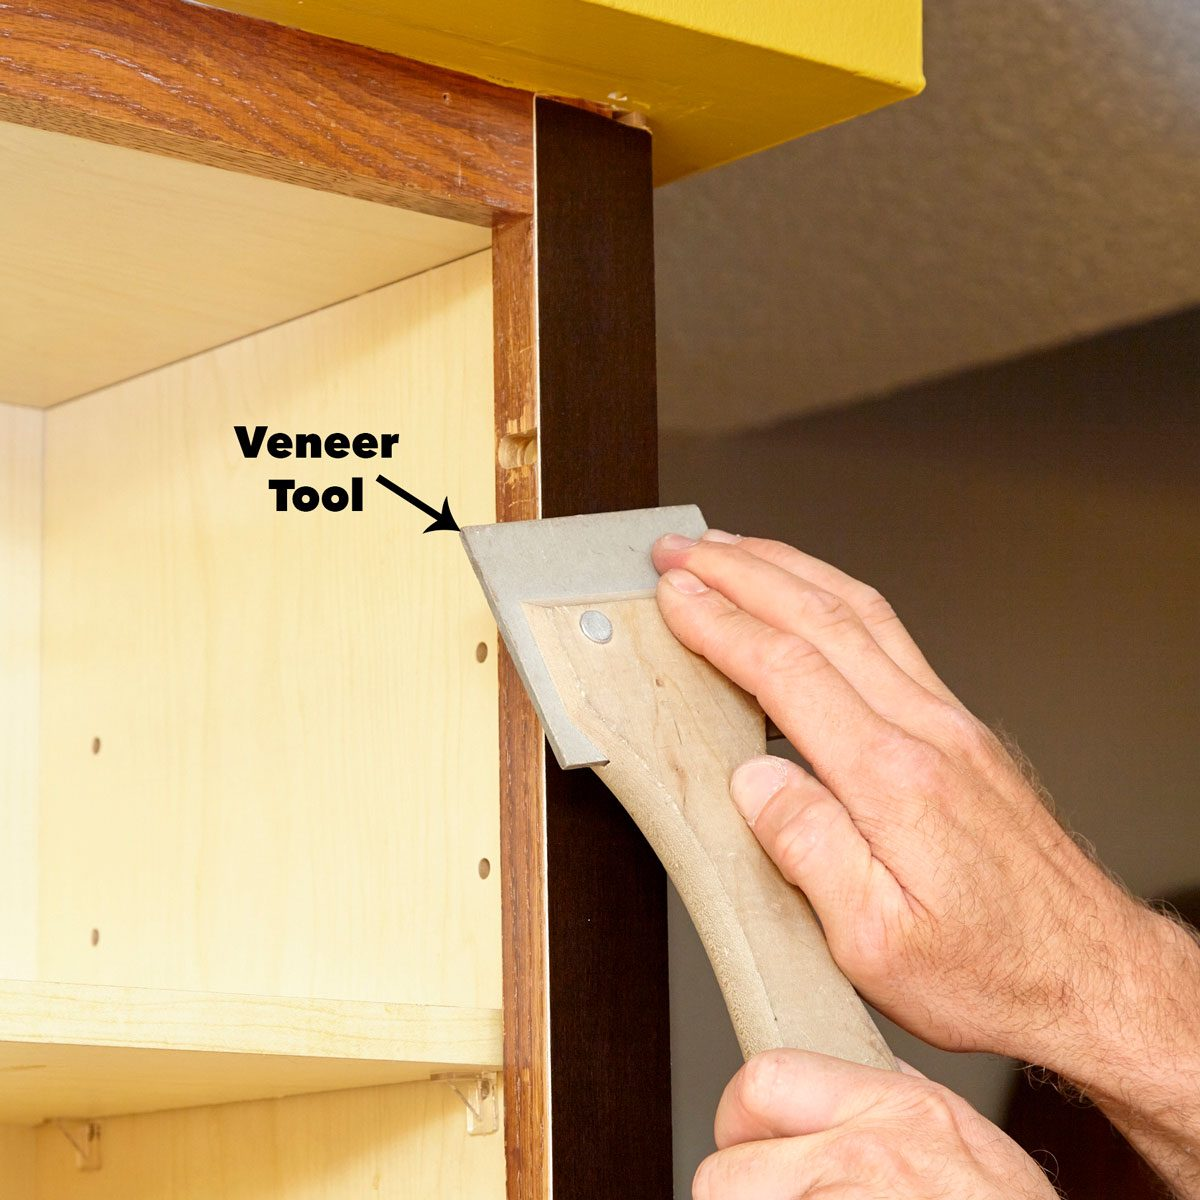 press the veneer cabinet door refacing